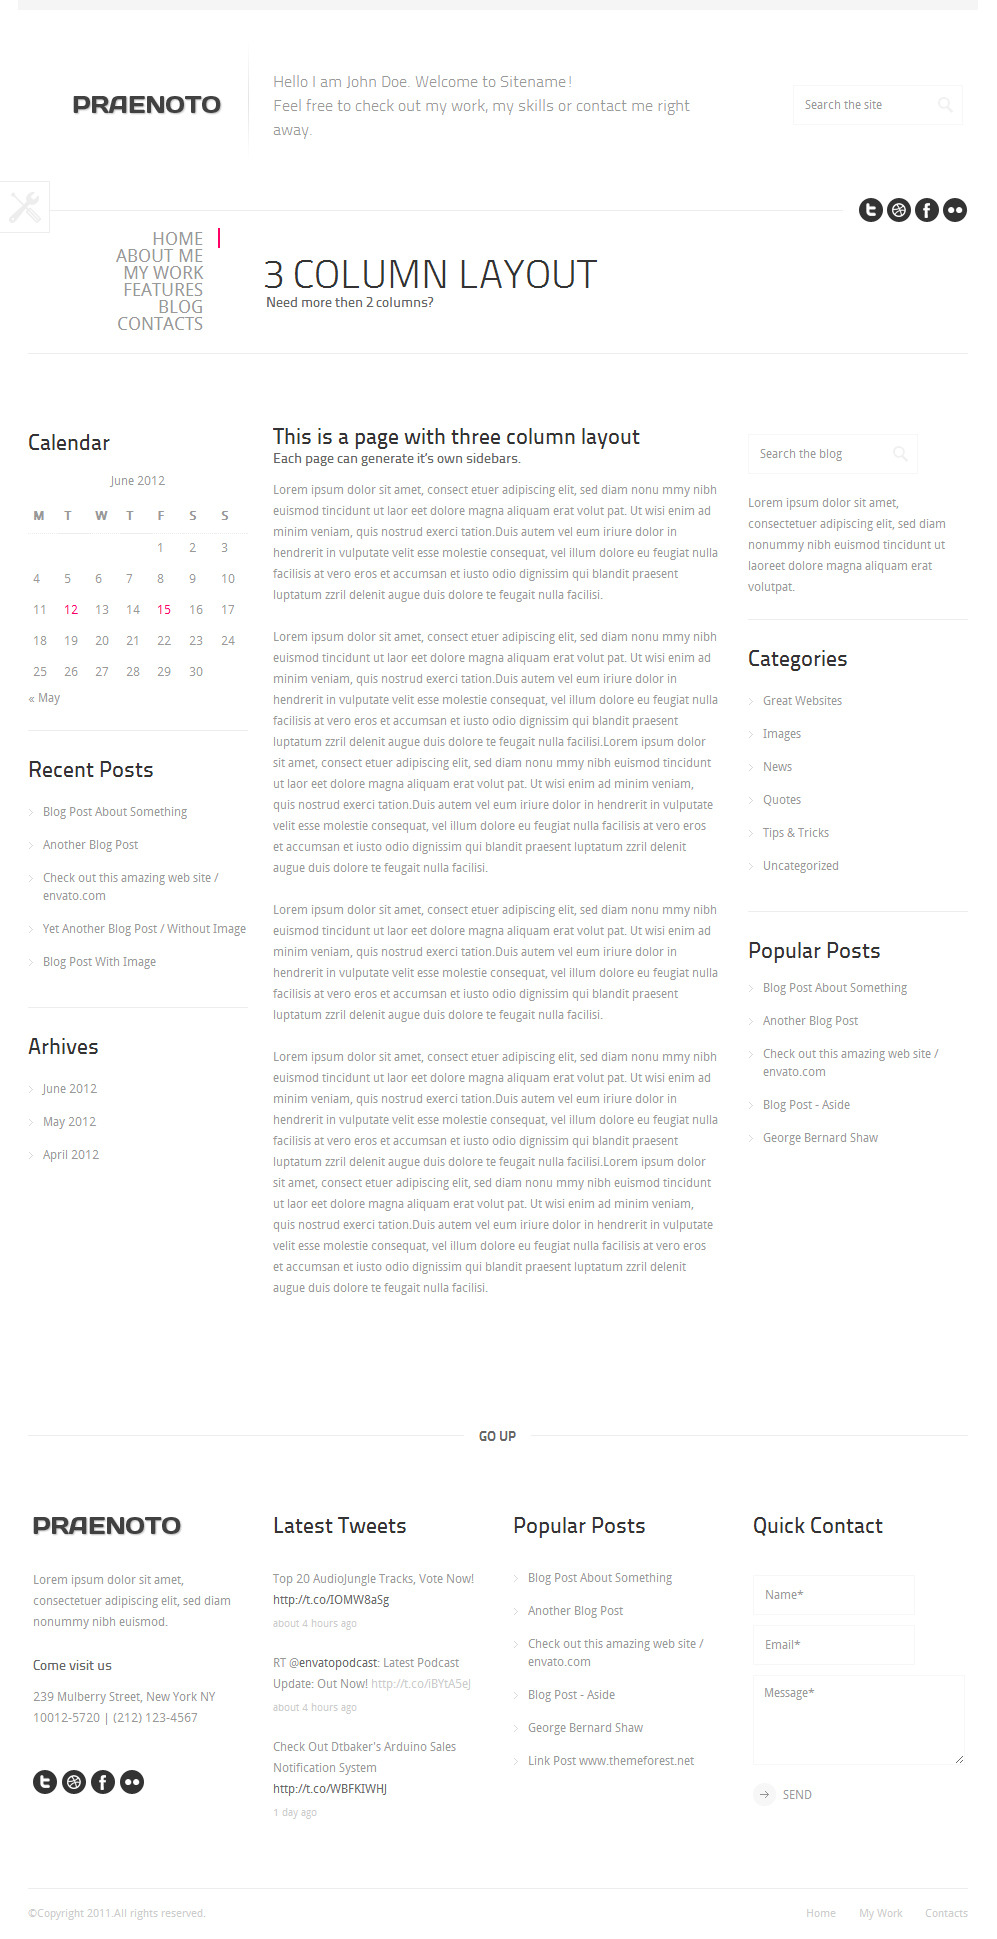 Praenoto - Clean & Minimalist WordPress Theme - Screenshot 14. Page with 3 Coulmn Layout